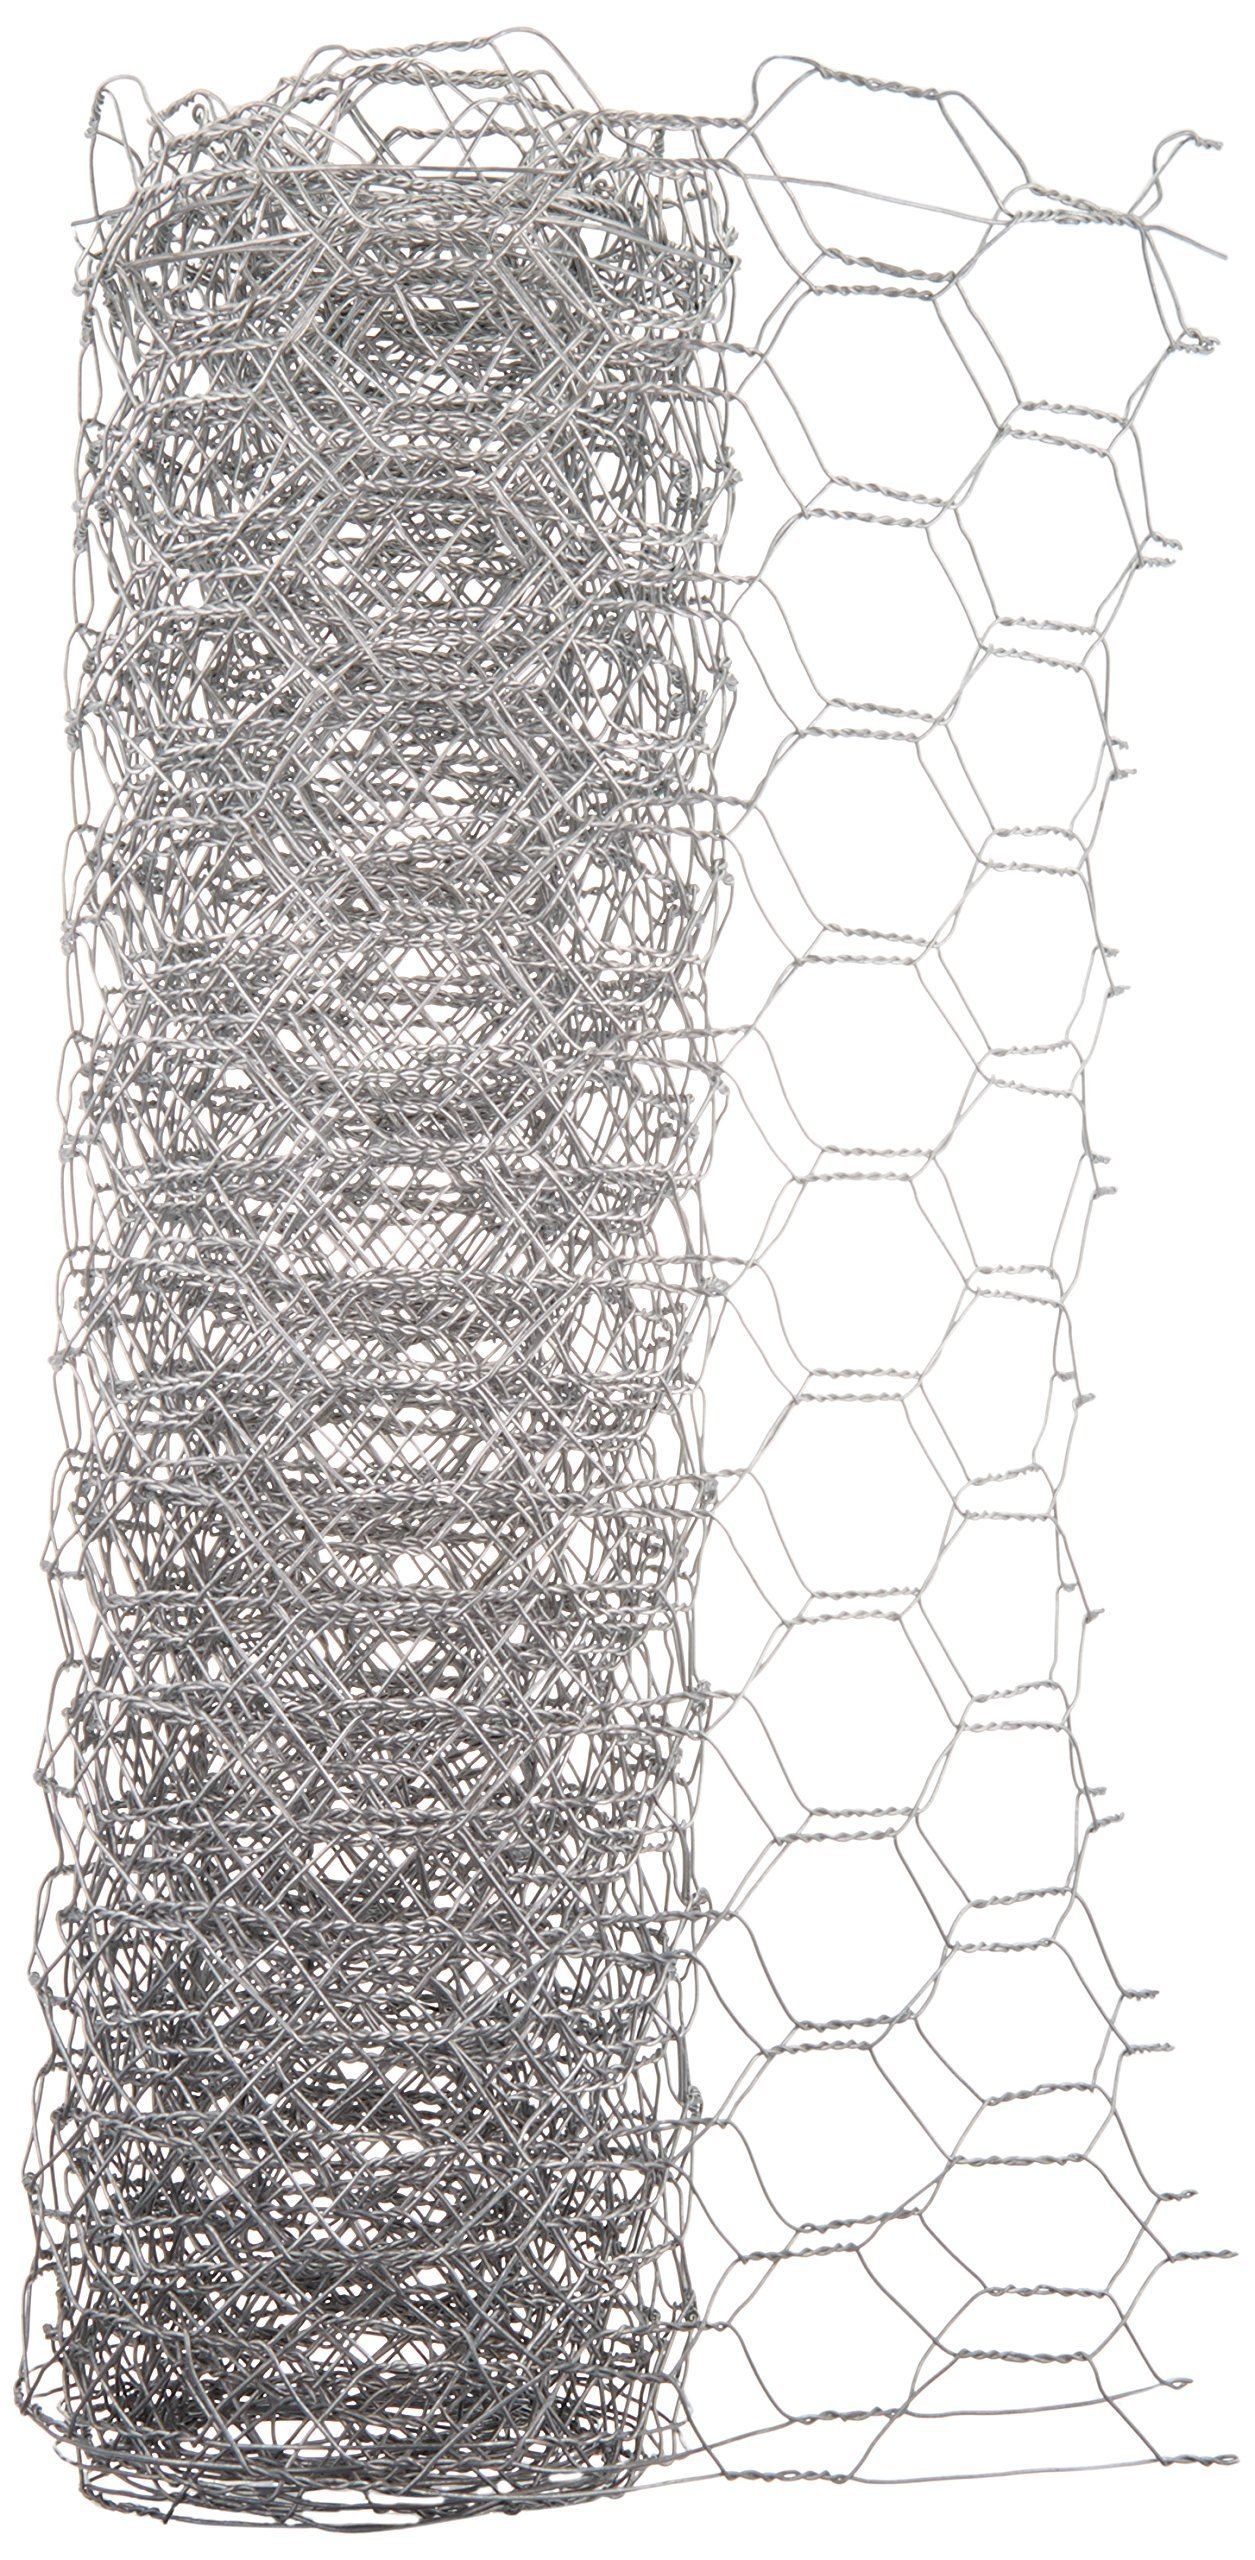 M-D Hobby & Craft 57513 Chicken Wire, 2 by 8-Feet, 3.5 x 3.5 x 12.5, Transparent by M-D Hobby & Craft